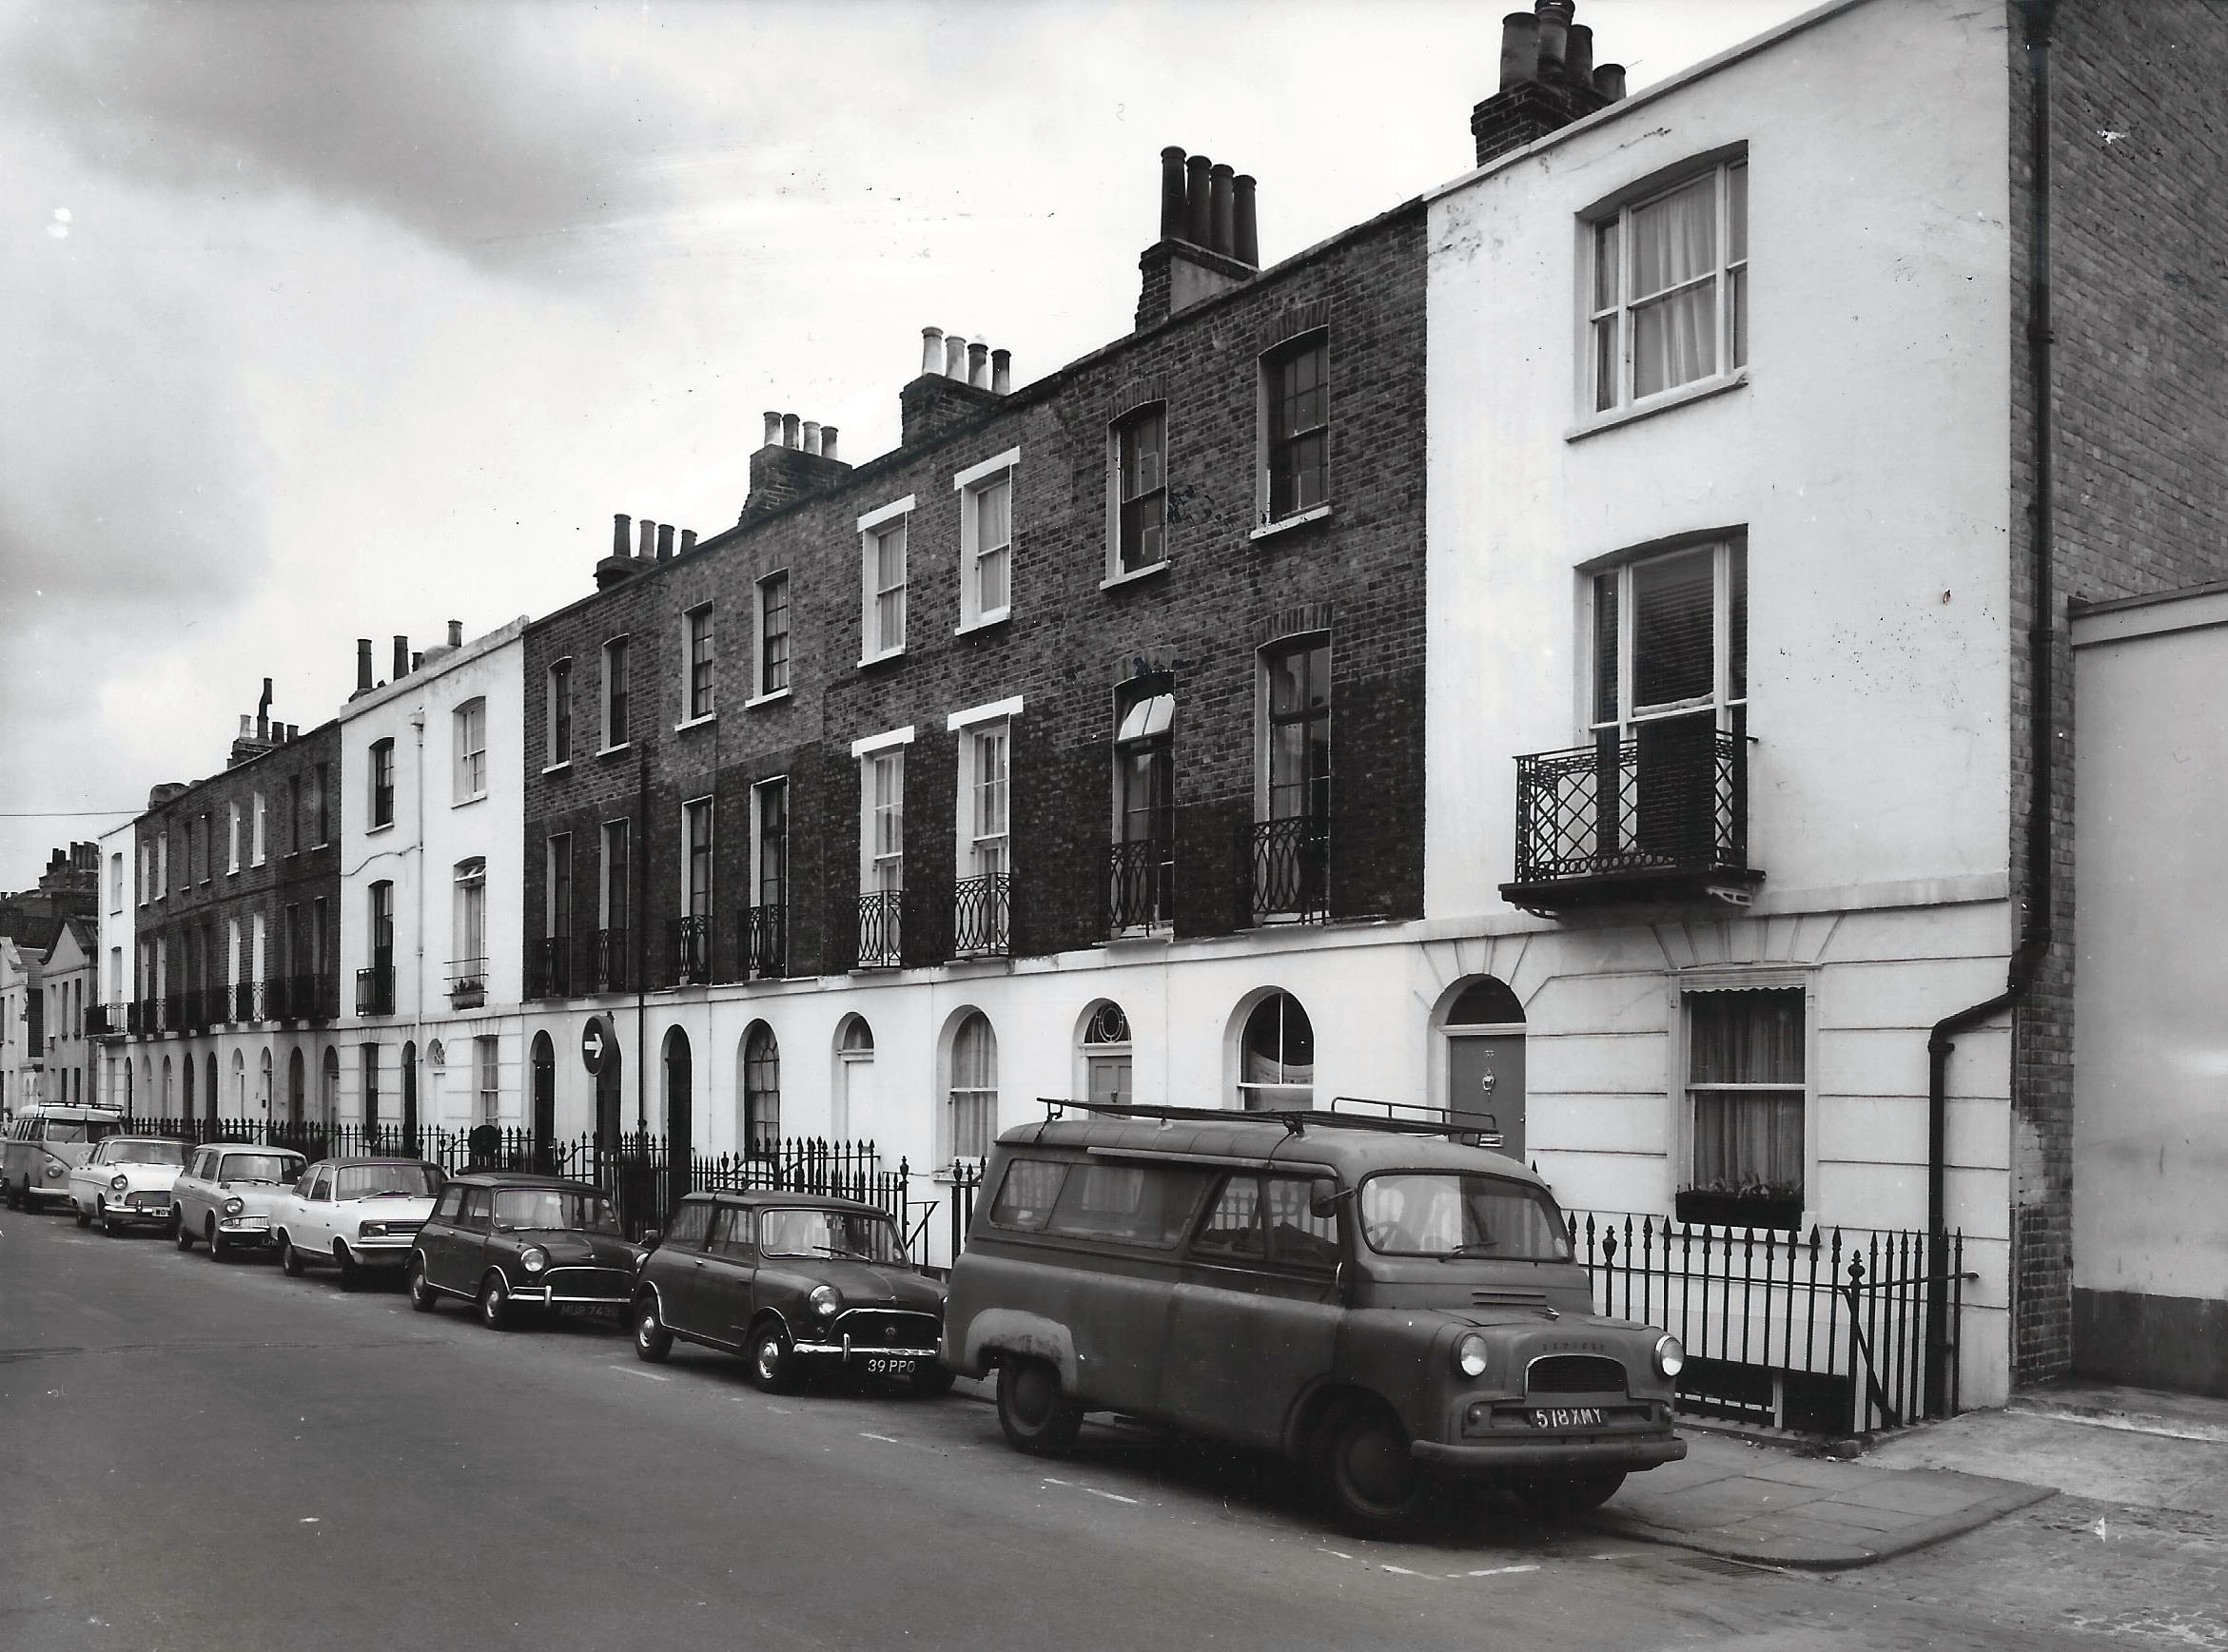 Jeffreys St in 1969 Credit: Historic England archive